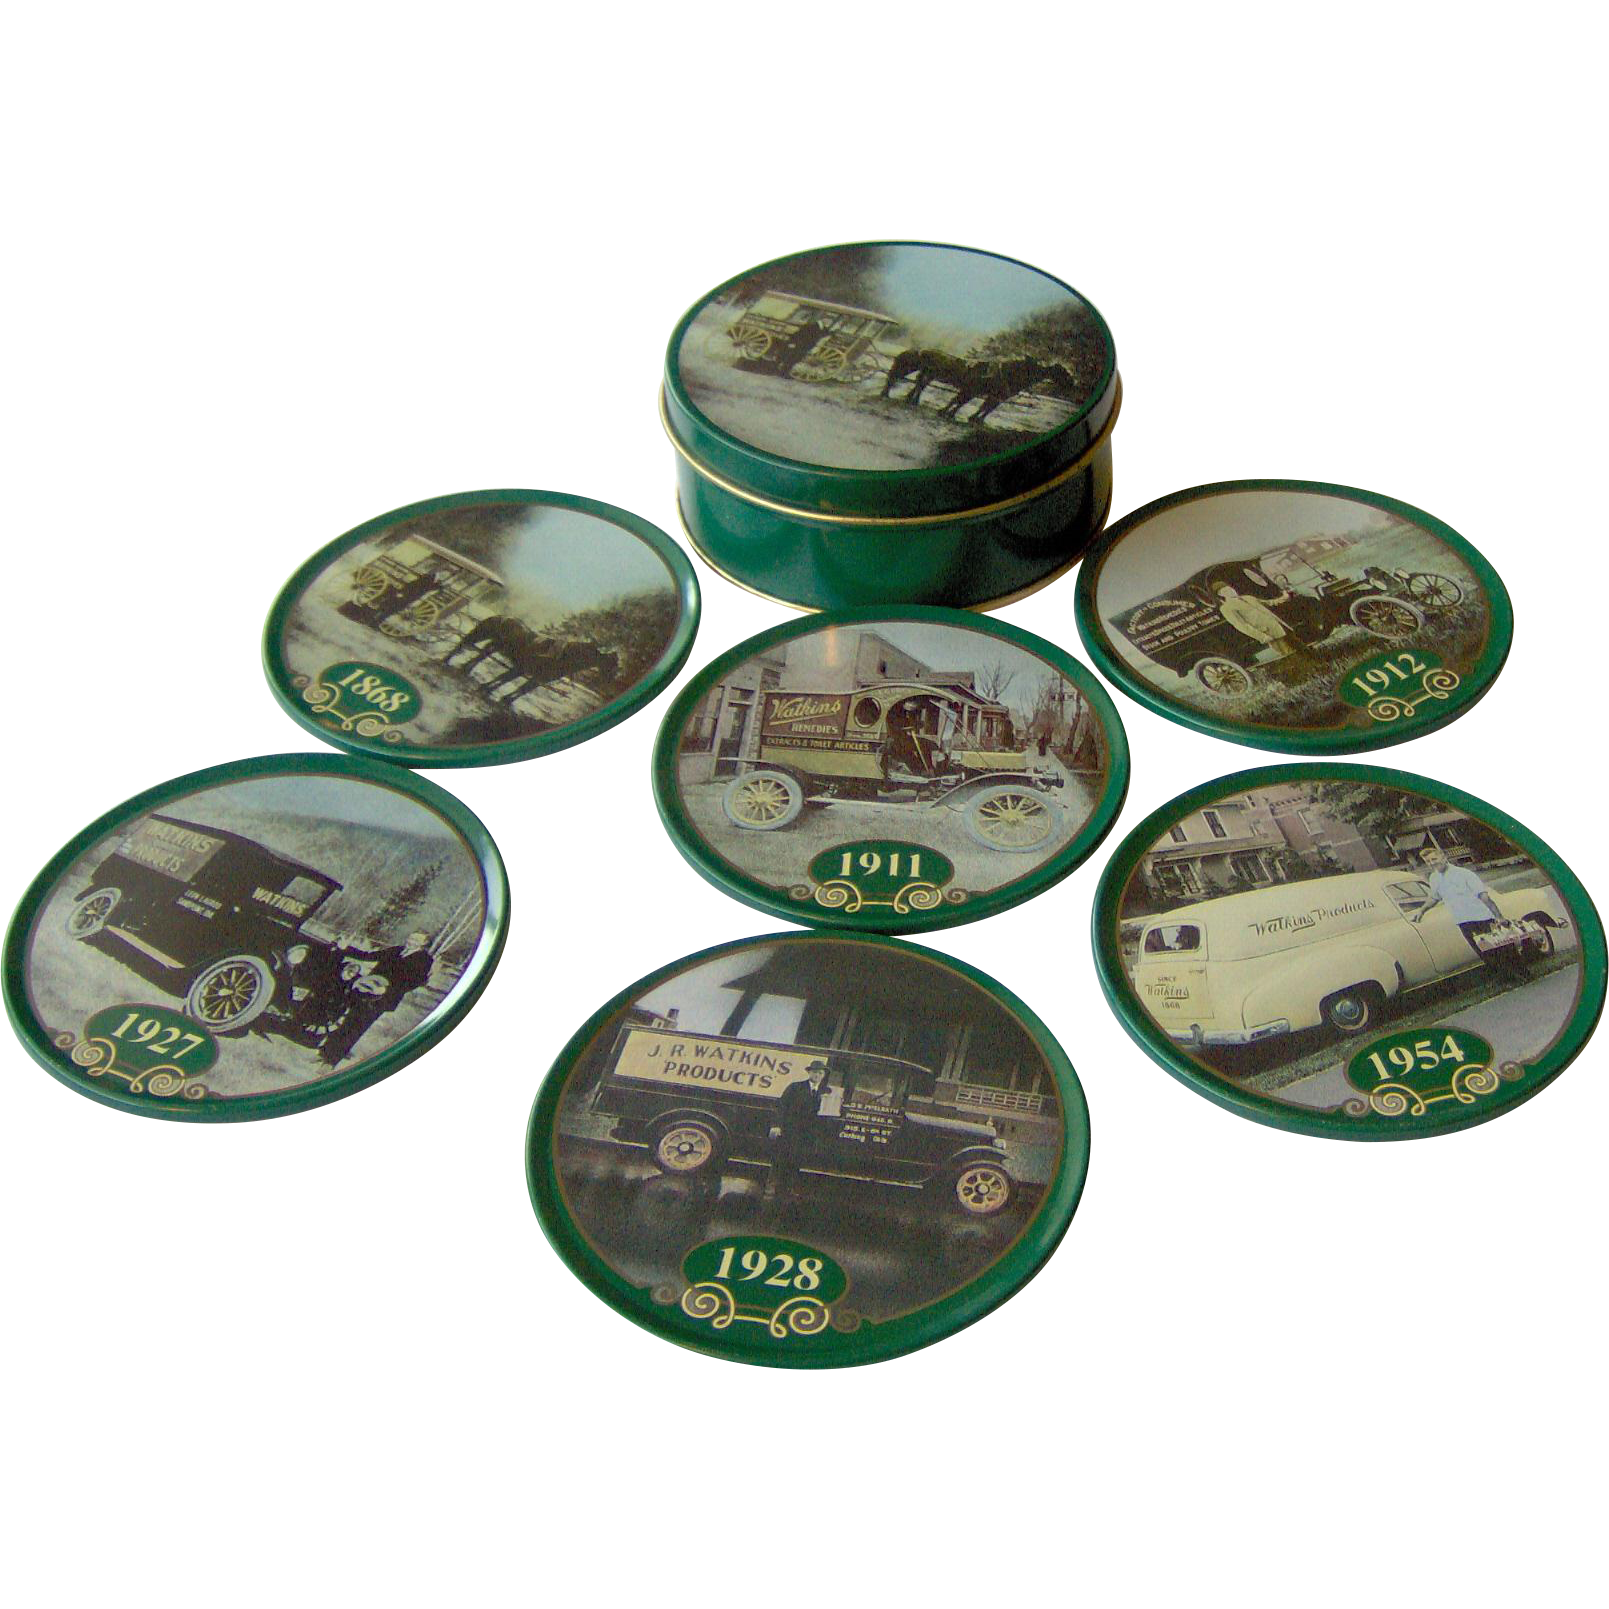 Watkins 125th Anniversary Coaster Set from 1993